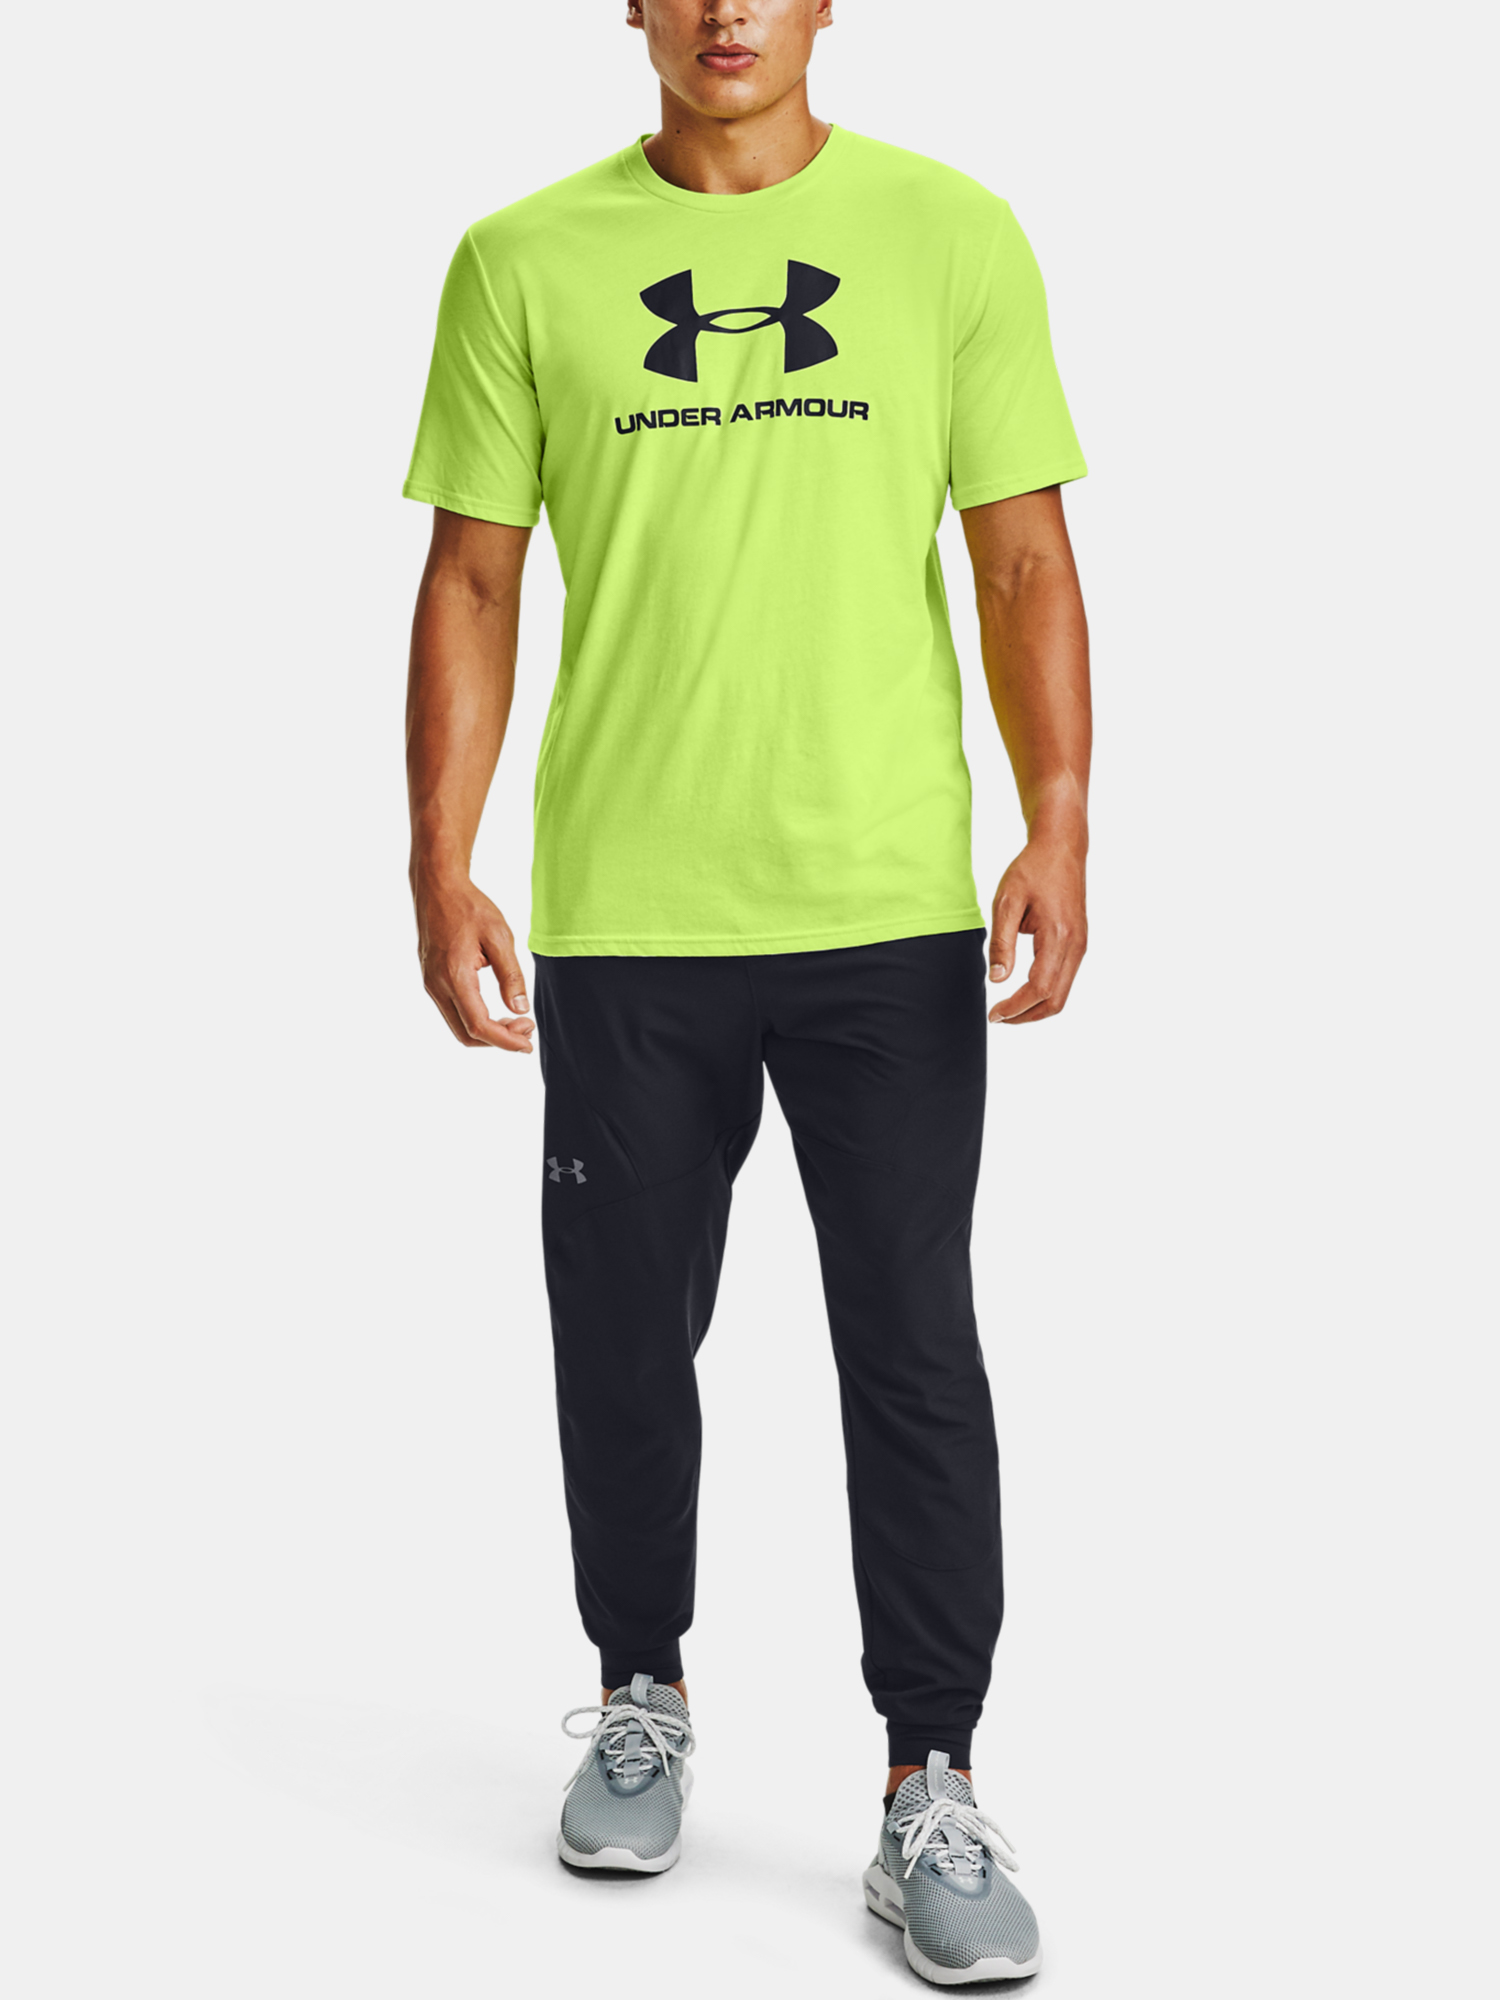 Tričko Under Armour SPORTSTYLE LOGO SS-GRN (6)